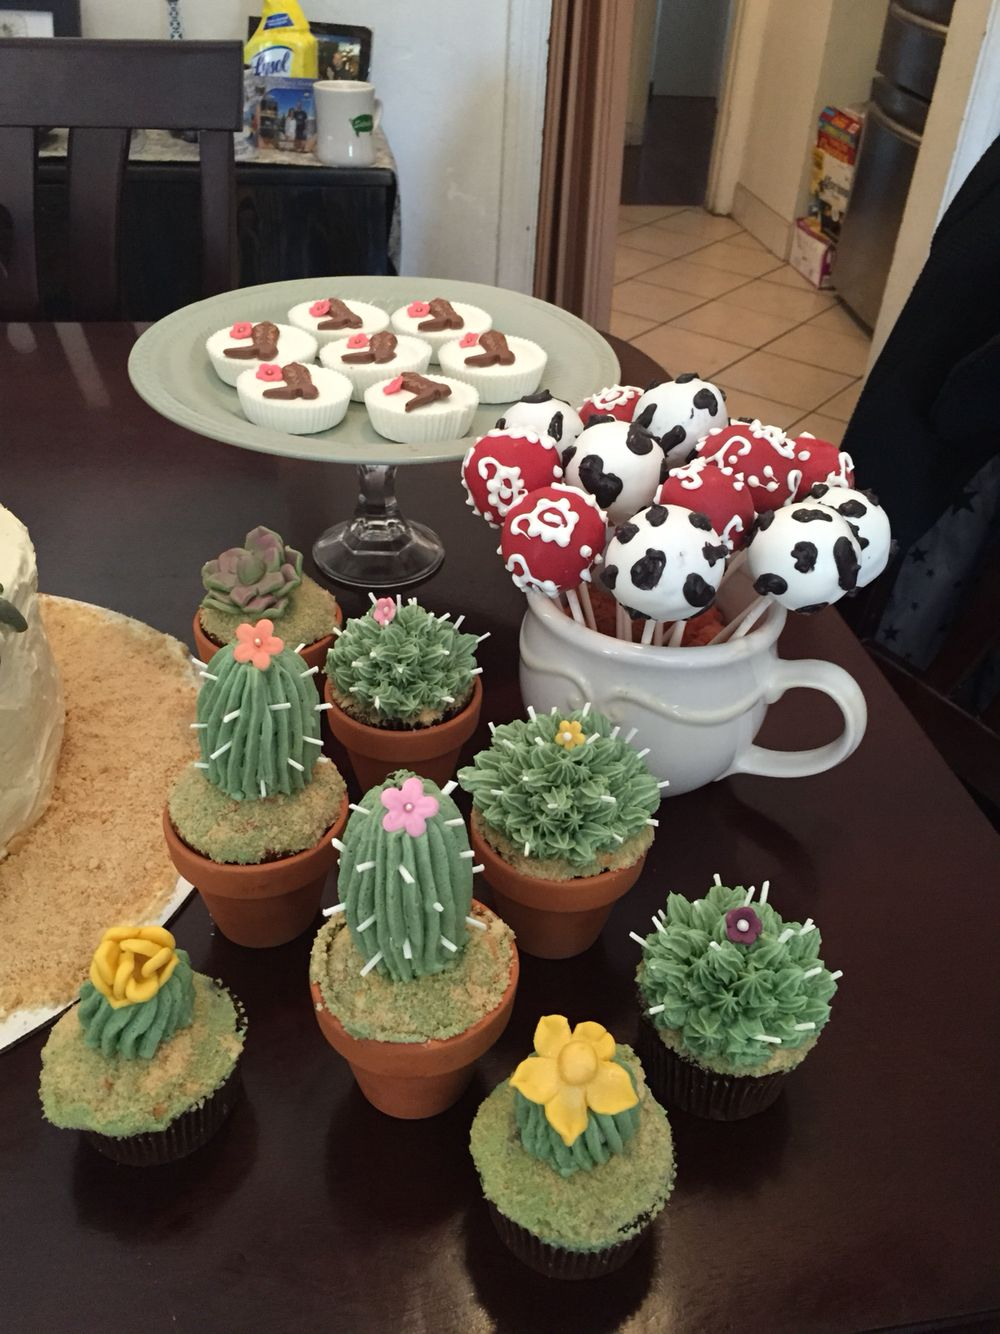 Wild West Party Desserts Succulents Cupcakes Cactus Cake Pops Wild West Party Themed Desserts Succulent Cupcakes